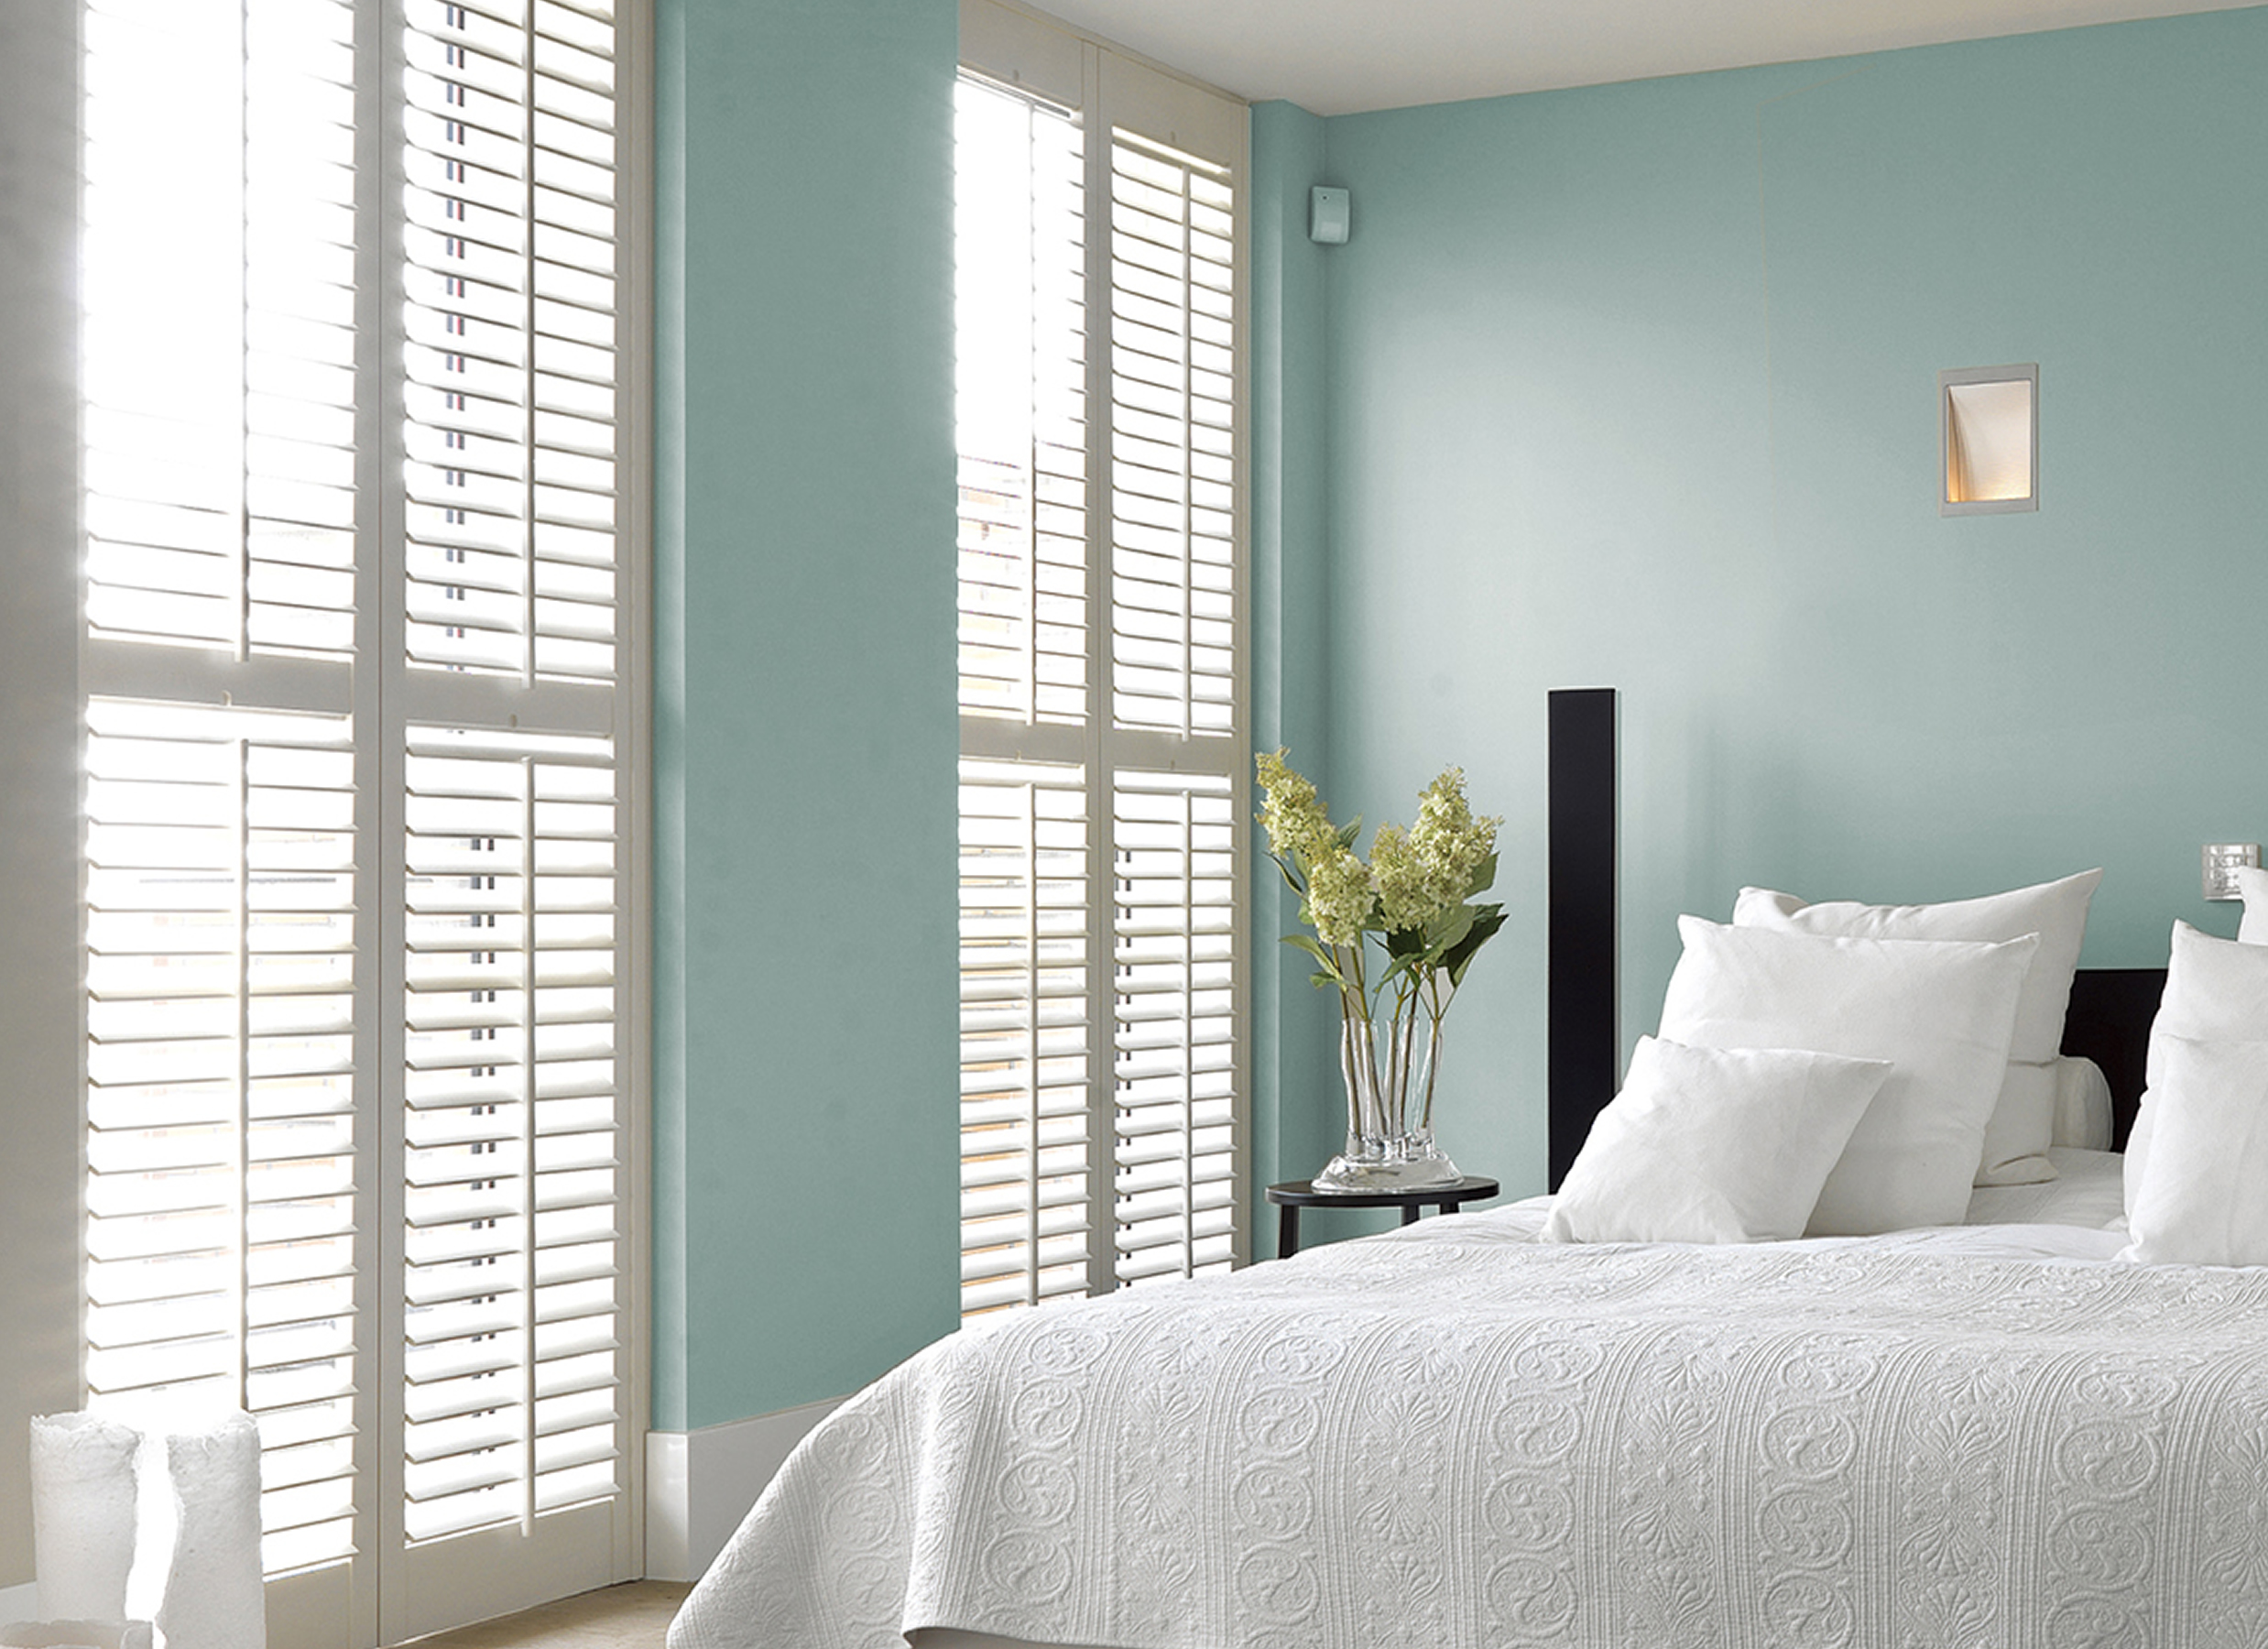 full-height-window-shutters-38.jpg